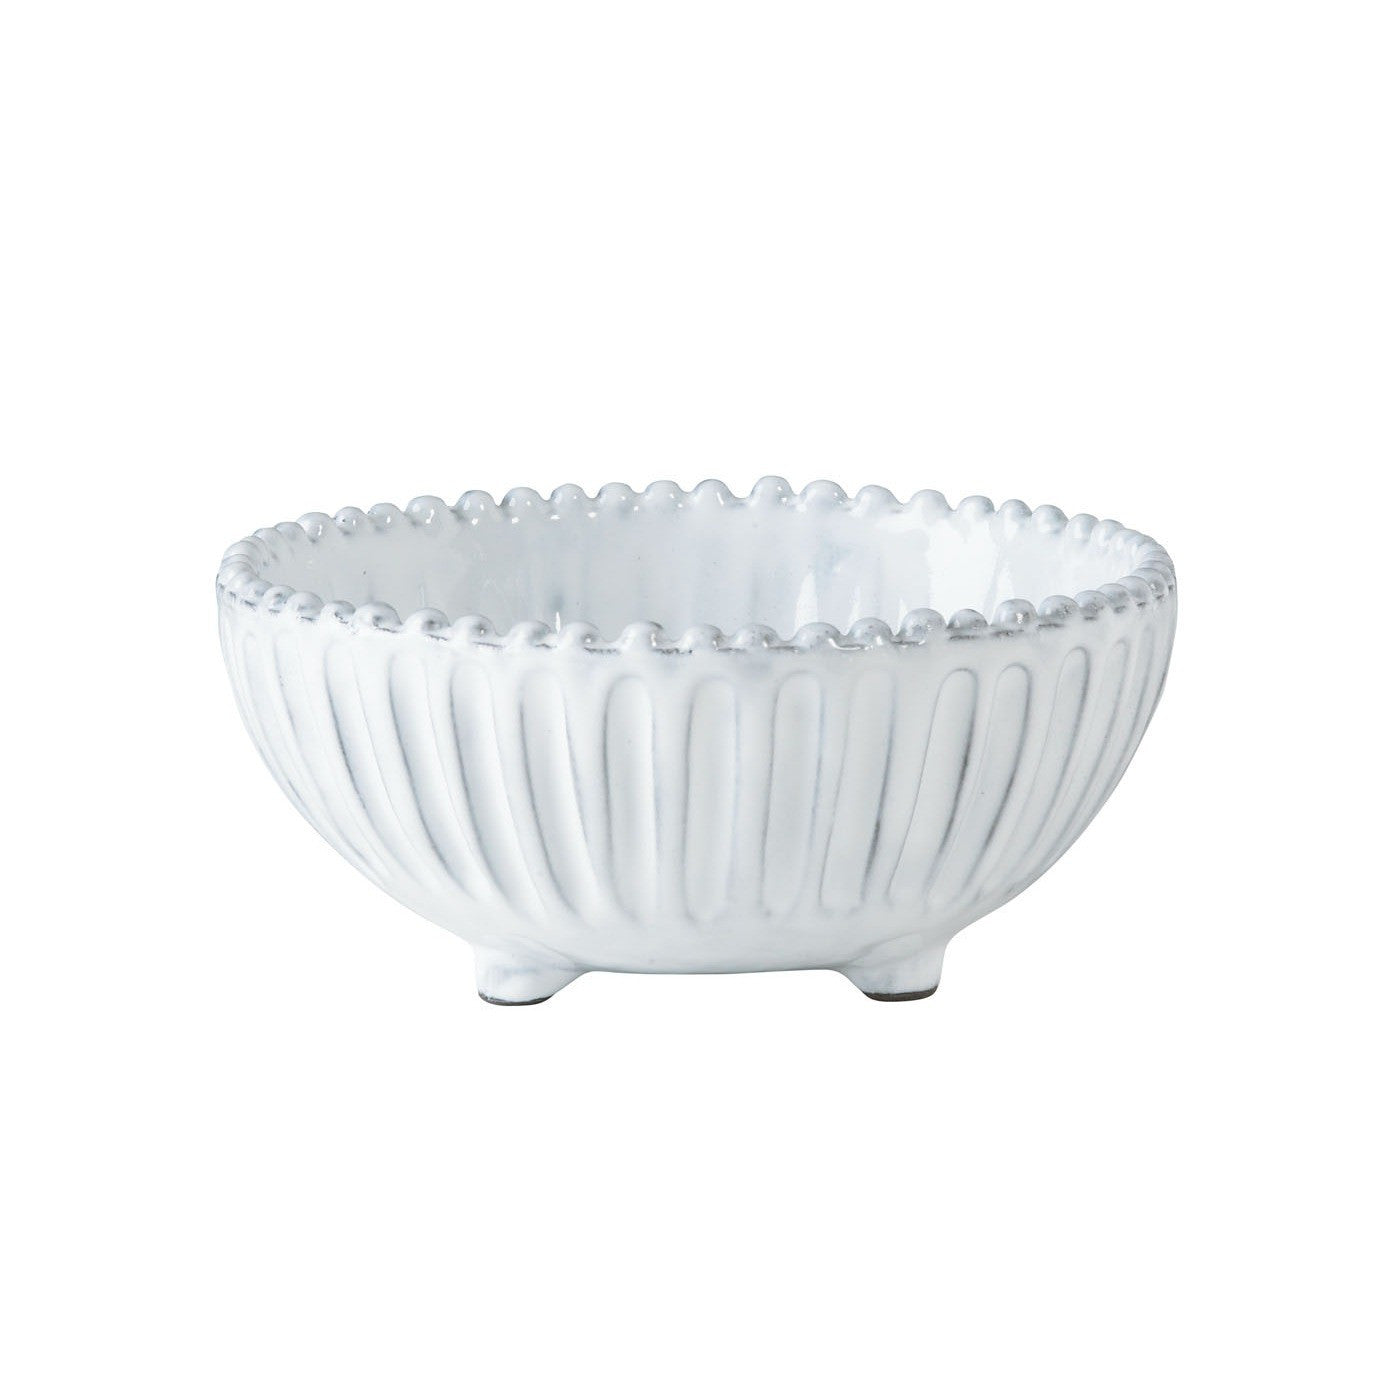 Incanto Stripe White Footed Bowl - Set of 4 , tableware - Vietri, Pezzo Bello  - 1